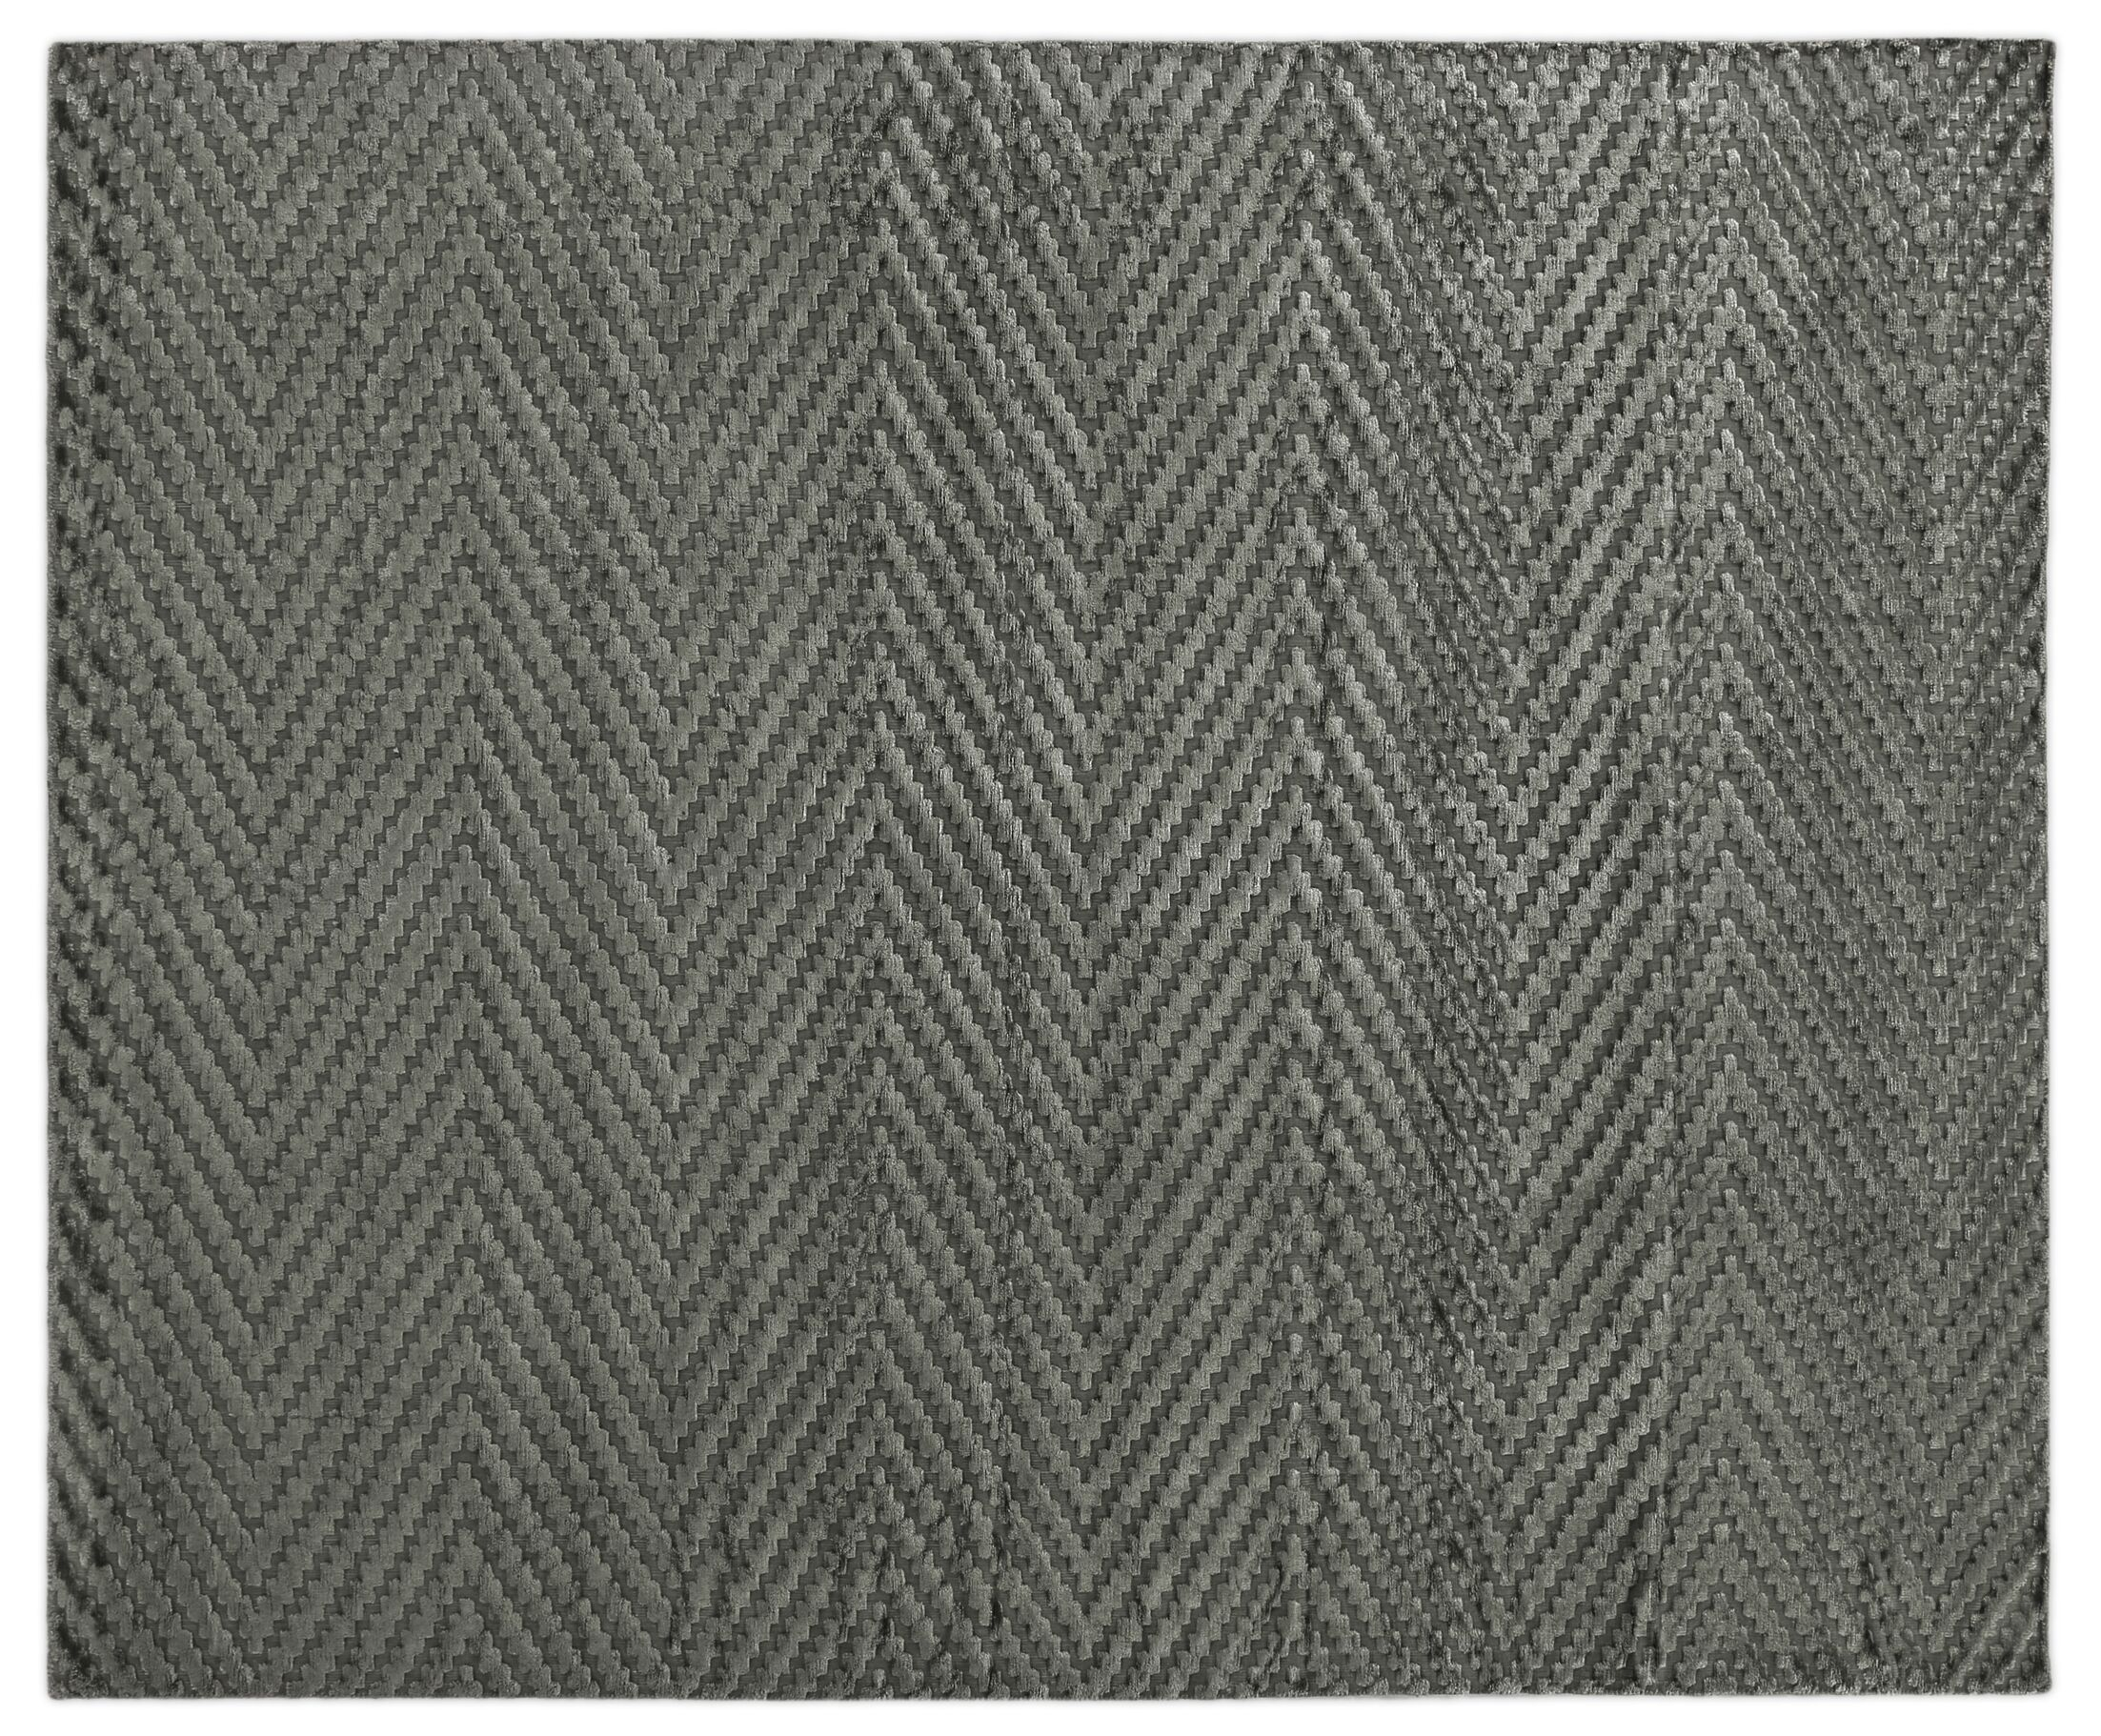 Kingsley Hand-Knotted Silk Dark Gray Area Rug Rug Size: Rectangle 9' x 12'